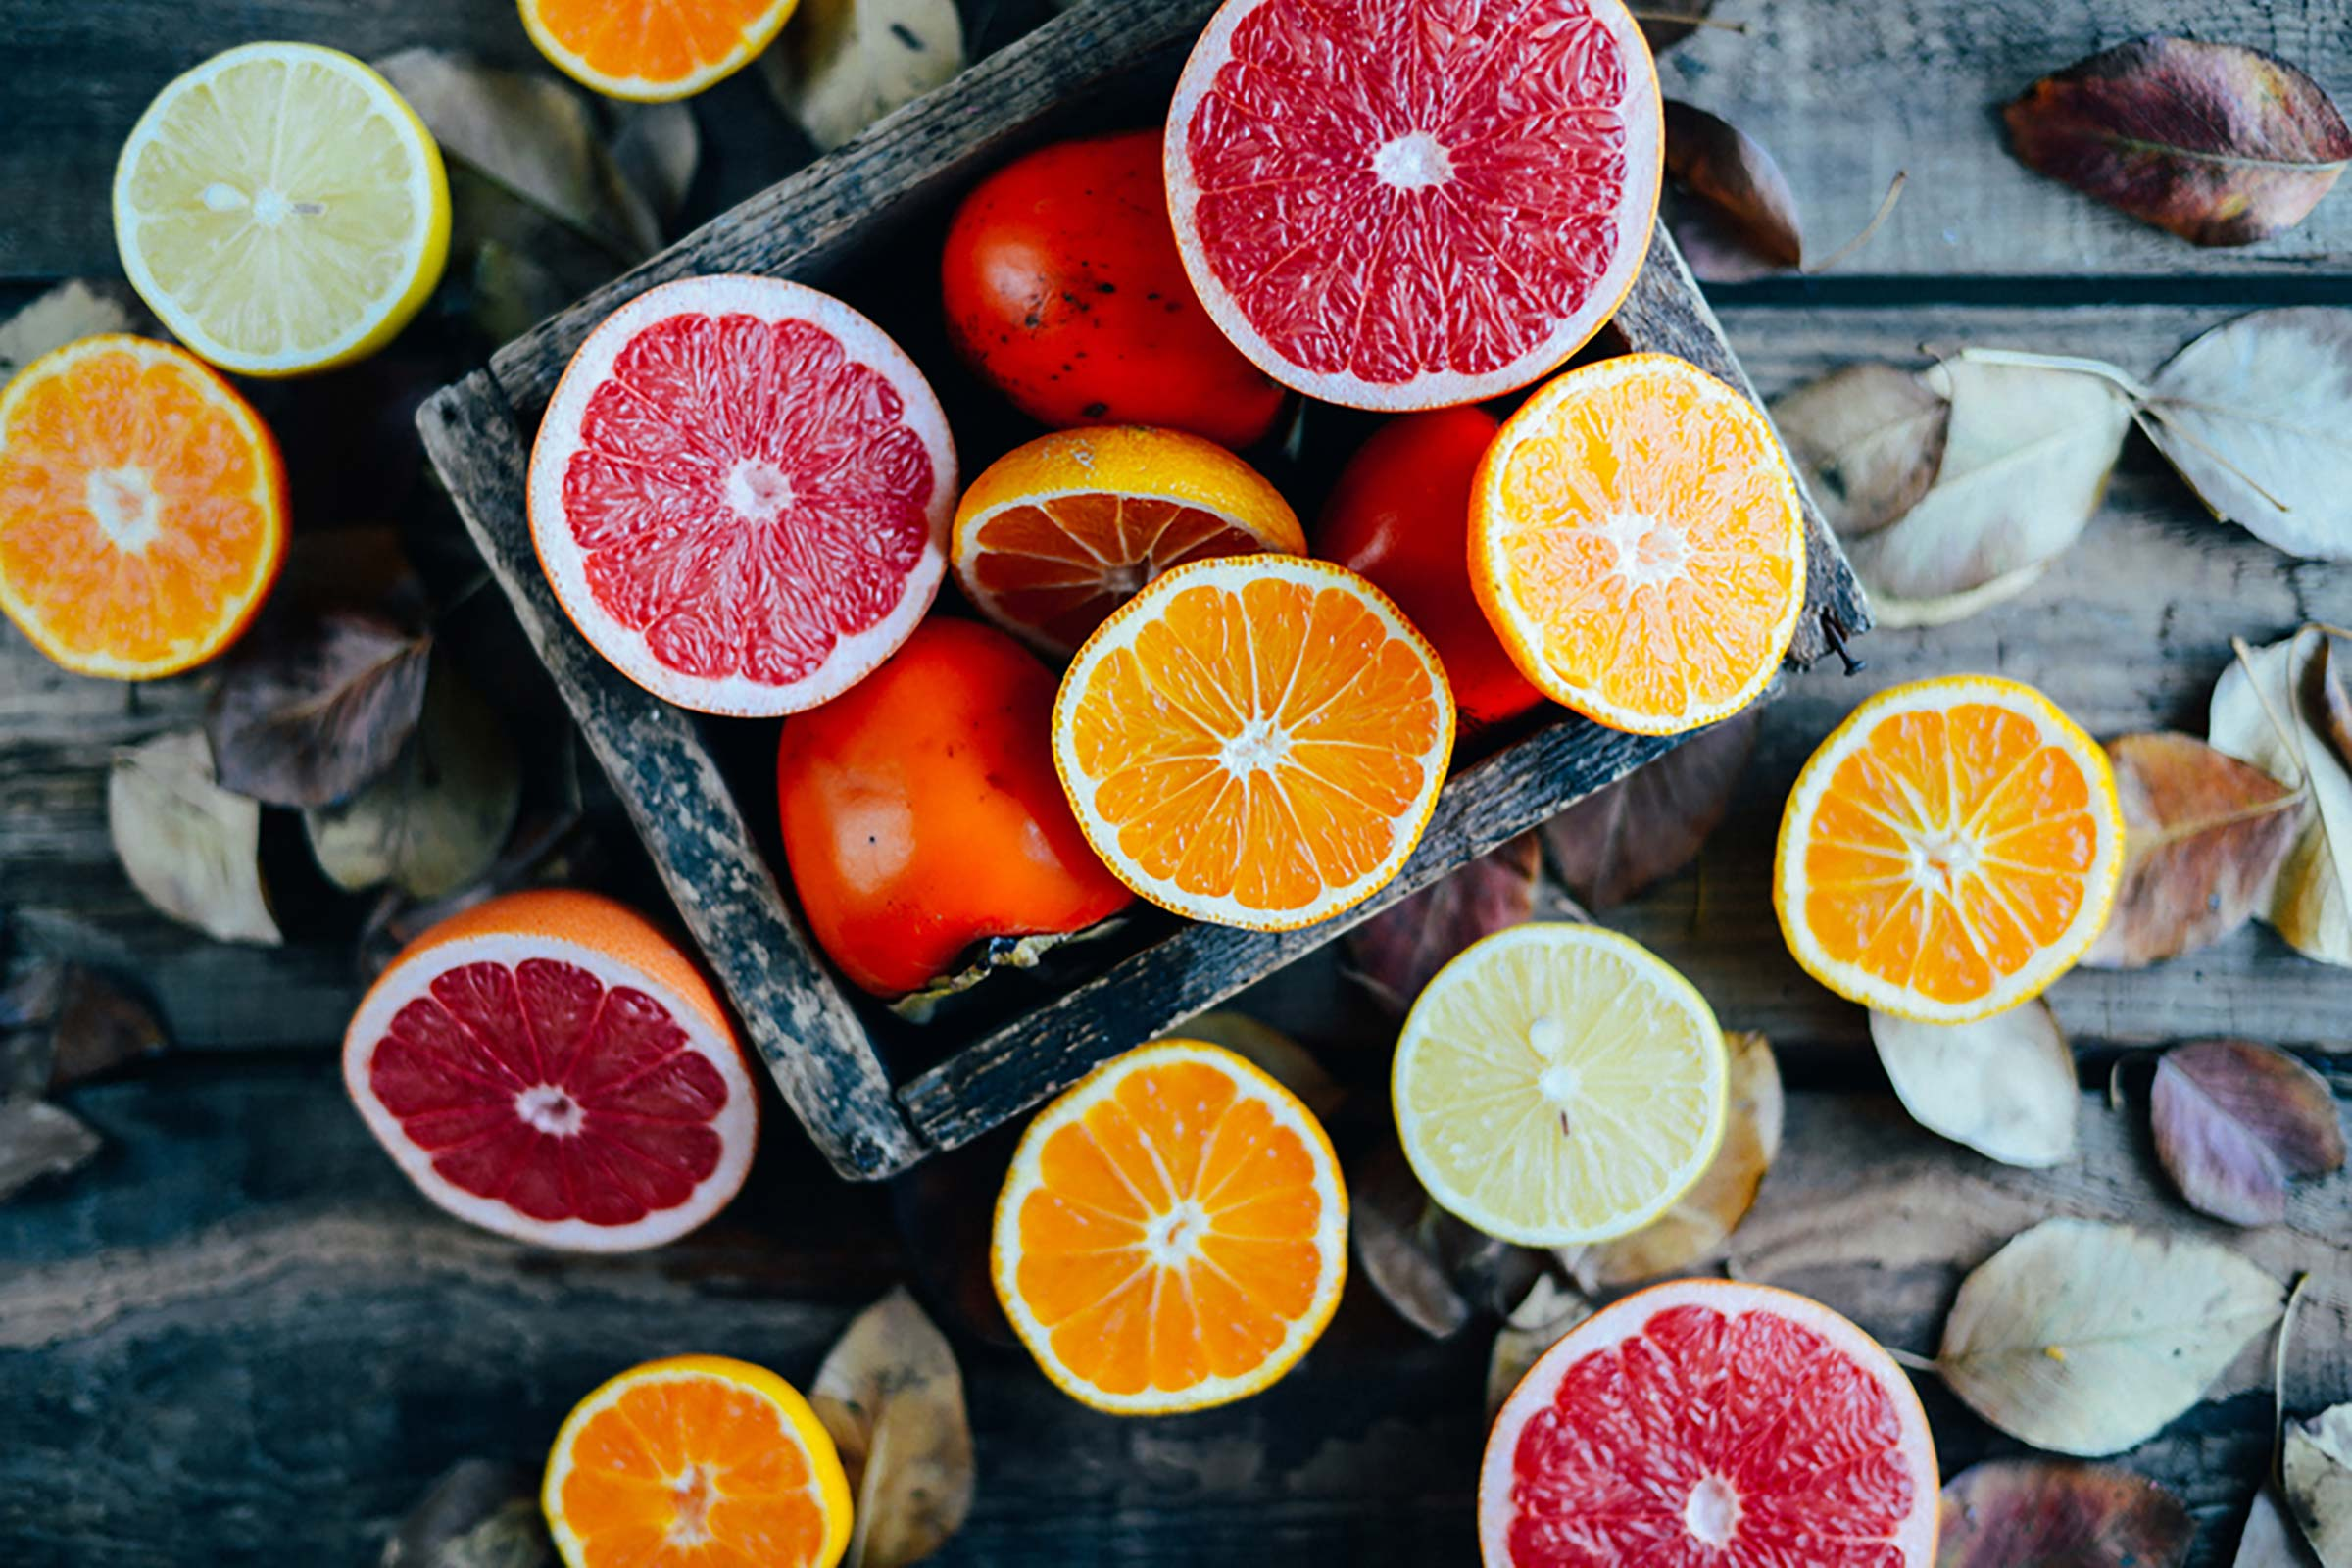 12_Citrus_Healthy-Holiday-Food-Gifts-Instead-of-Fruit-Cake_524210419-ch_ch